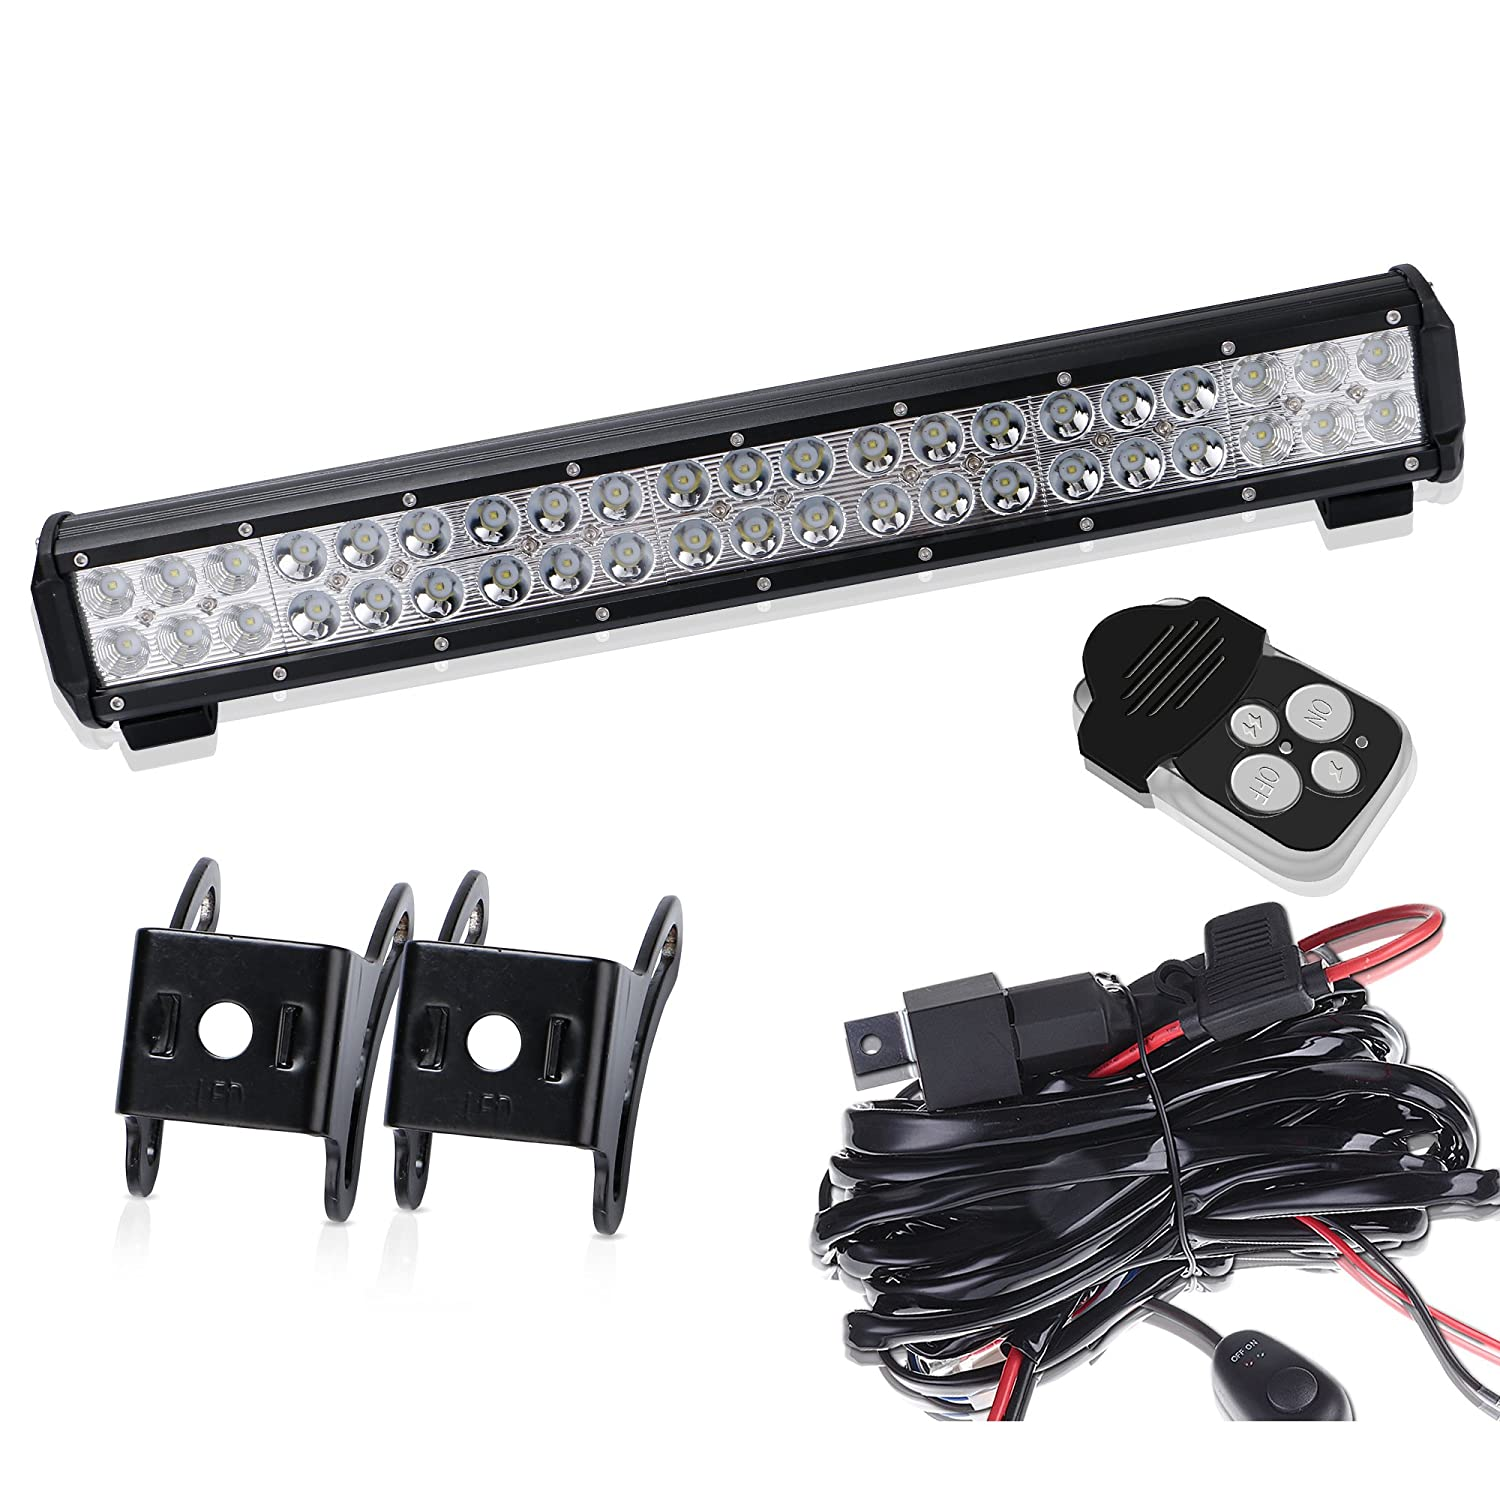 20in LED Light Bar With Wiring Harness Waterproof For 4 Wheeler Honda  Rancher